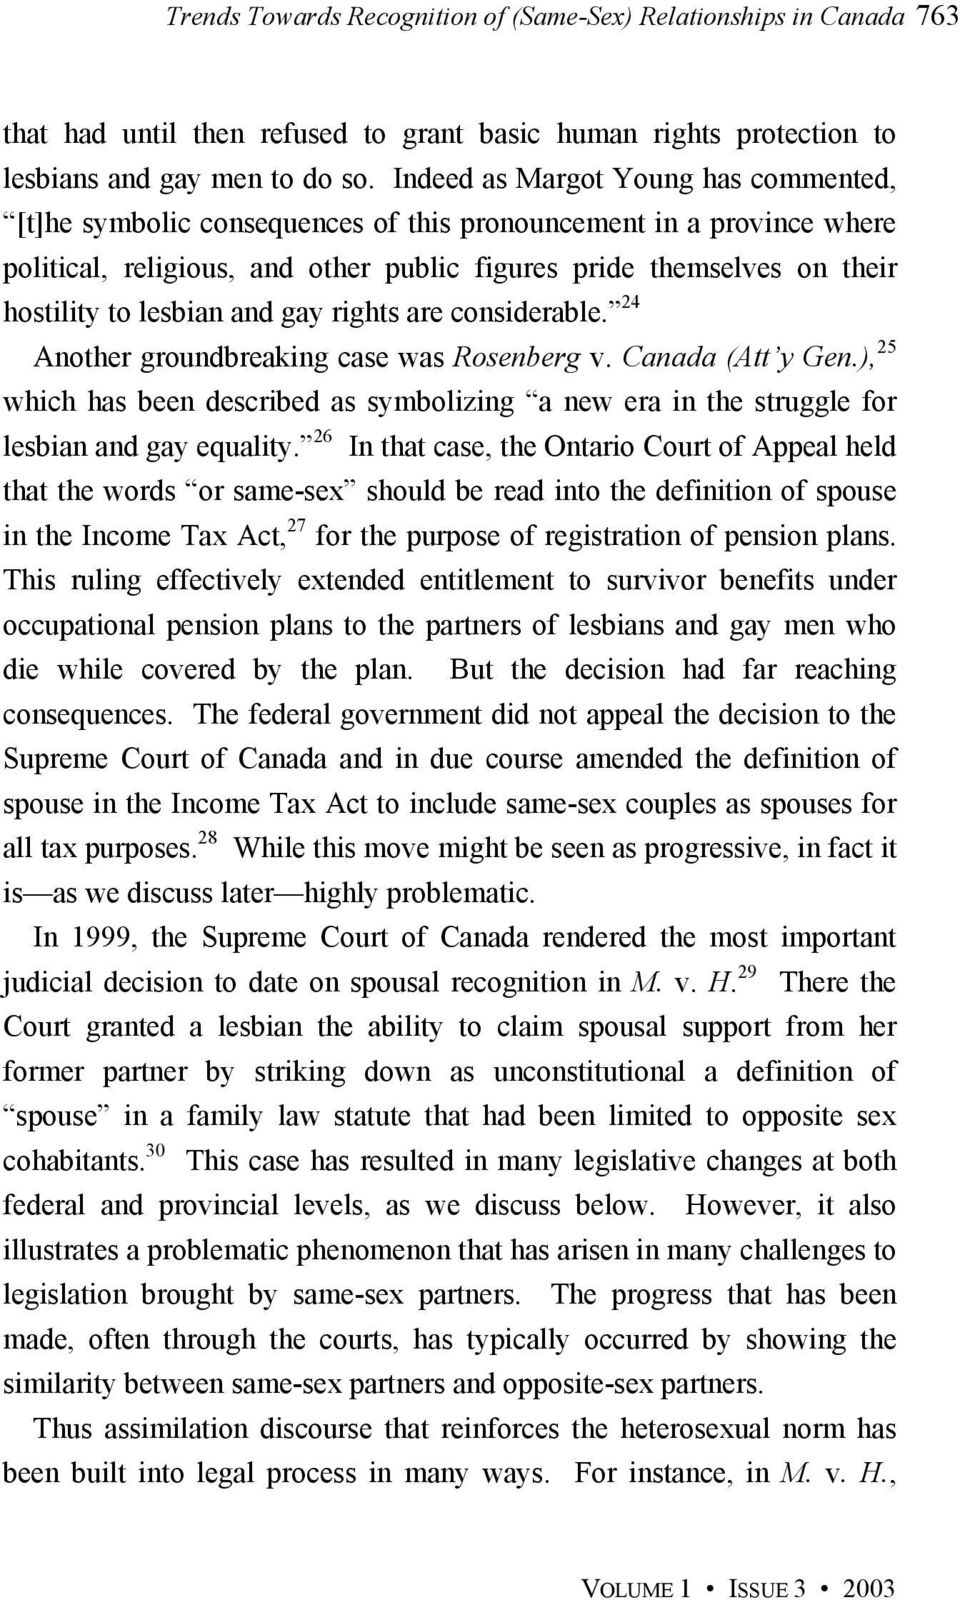 lesbian and gay rights are considerable. 24 Another groundbreaking case was Rosenberg v. Canada (Att y Gen.